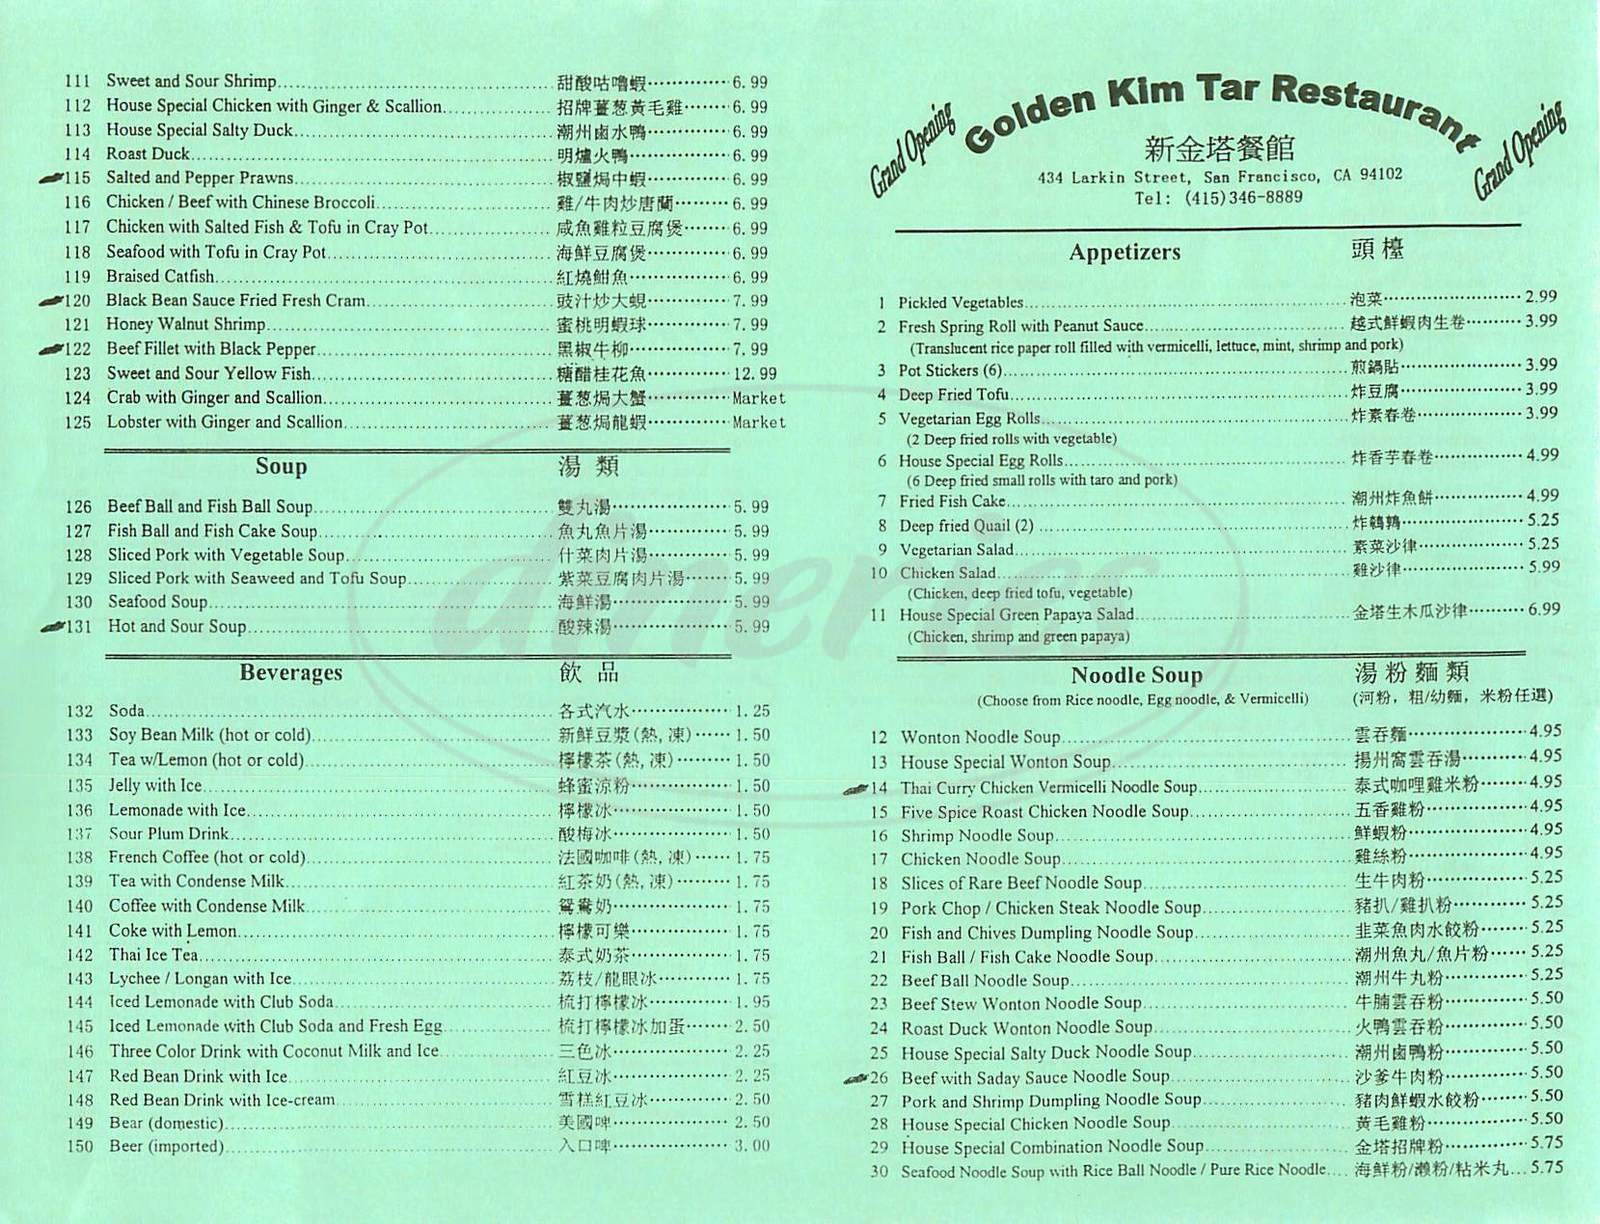 menu for Golden Kim Tar Restaurant